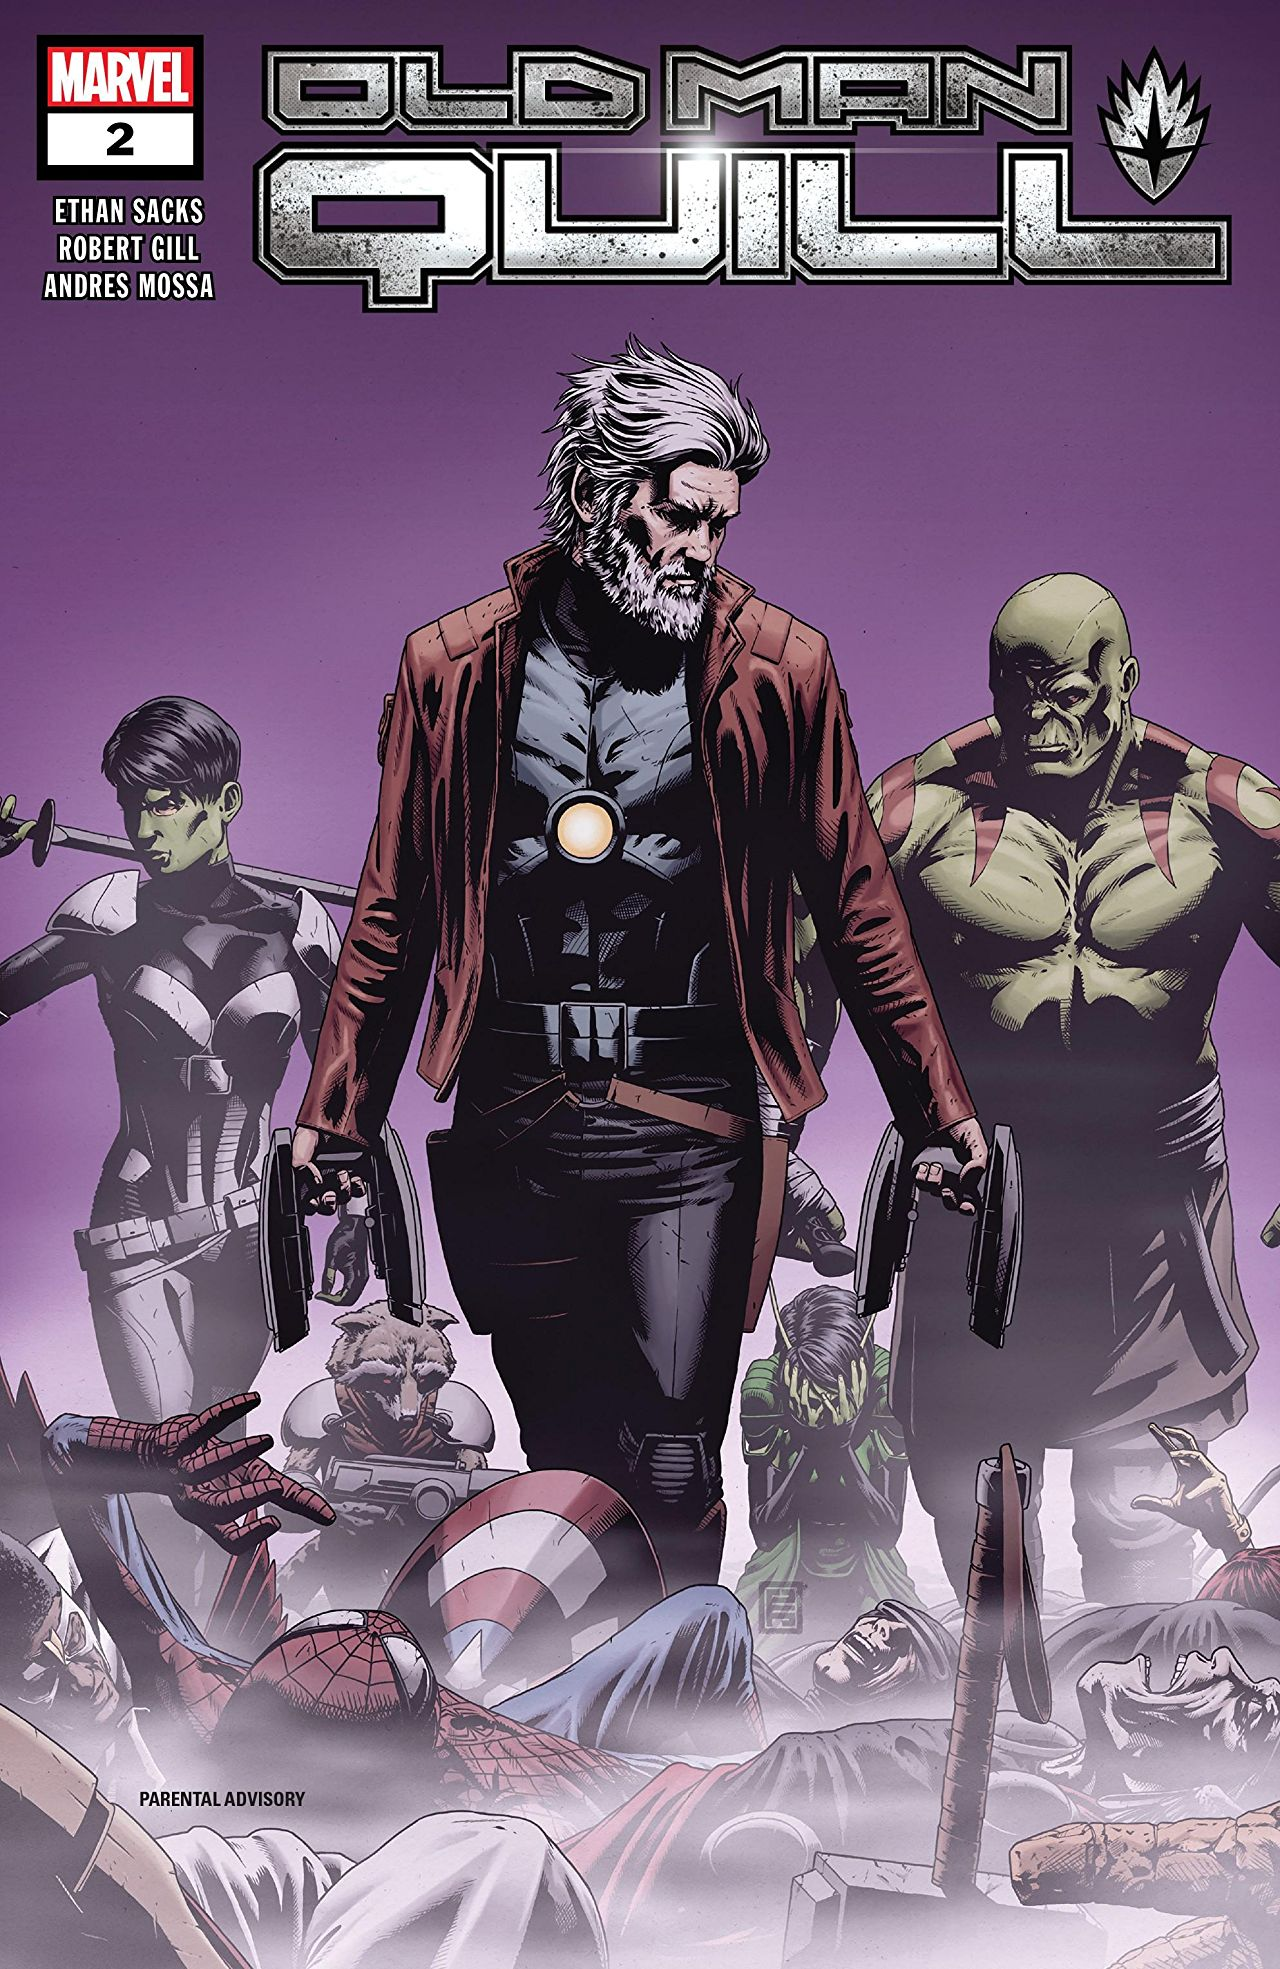 Marvel Preview: Old Man Quill #2